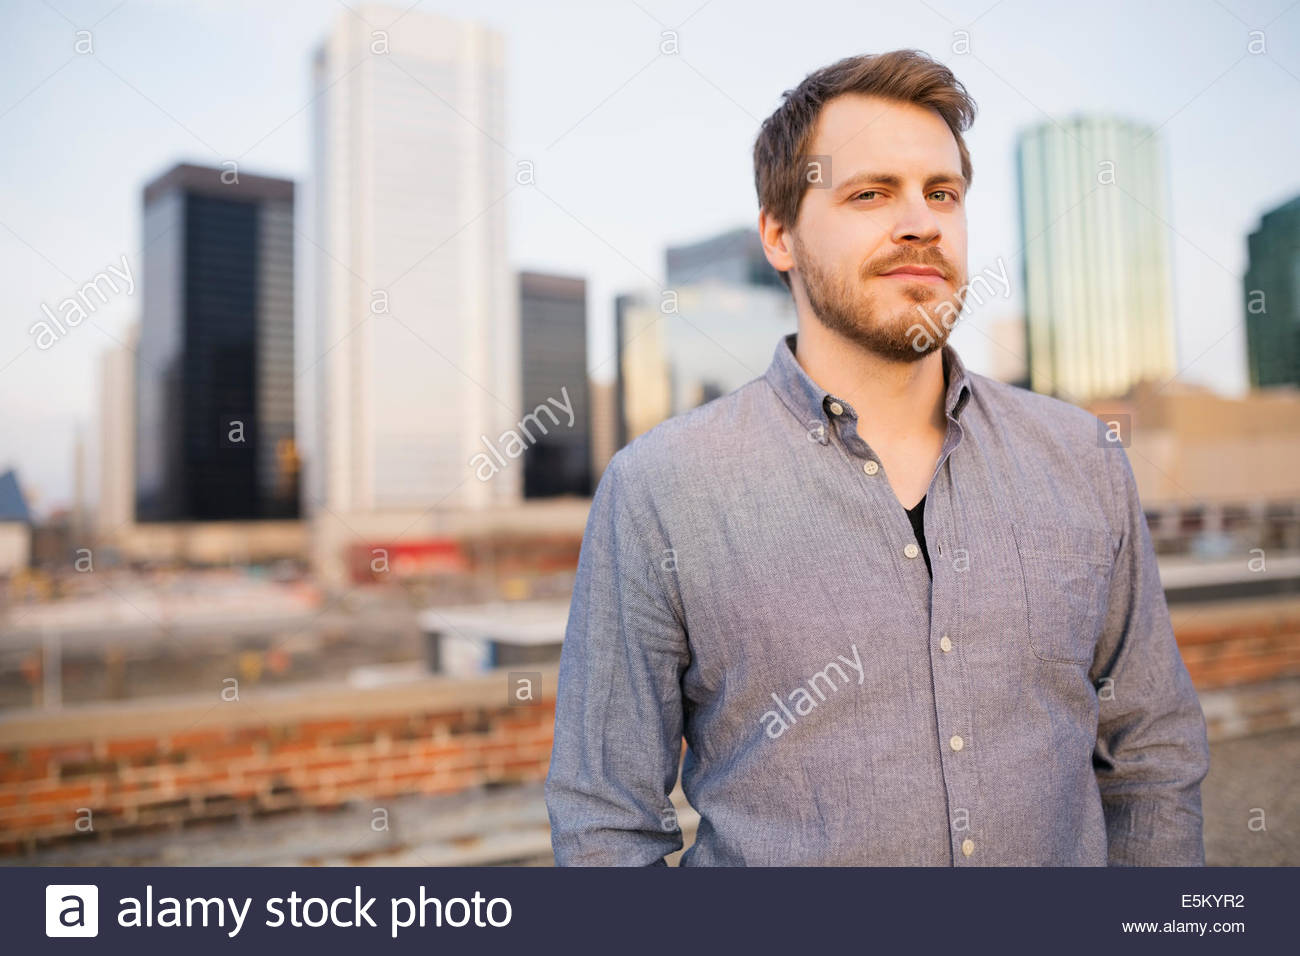 Portrait of man on urban rooftop - Stock Image